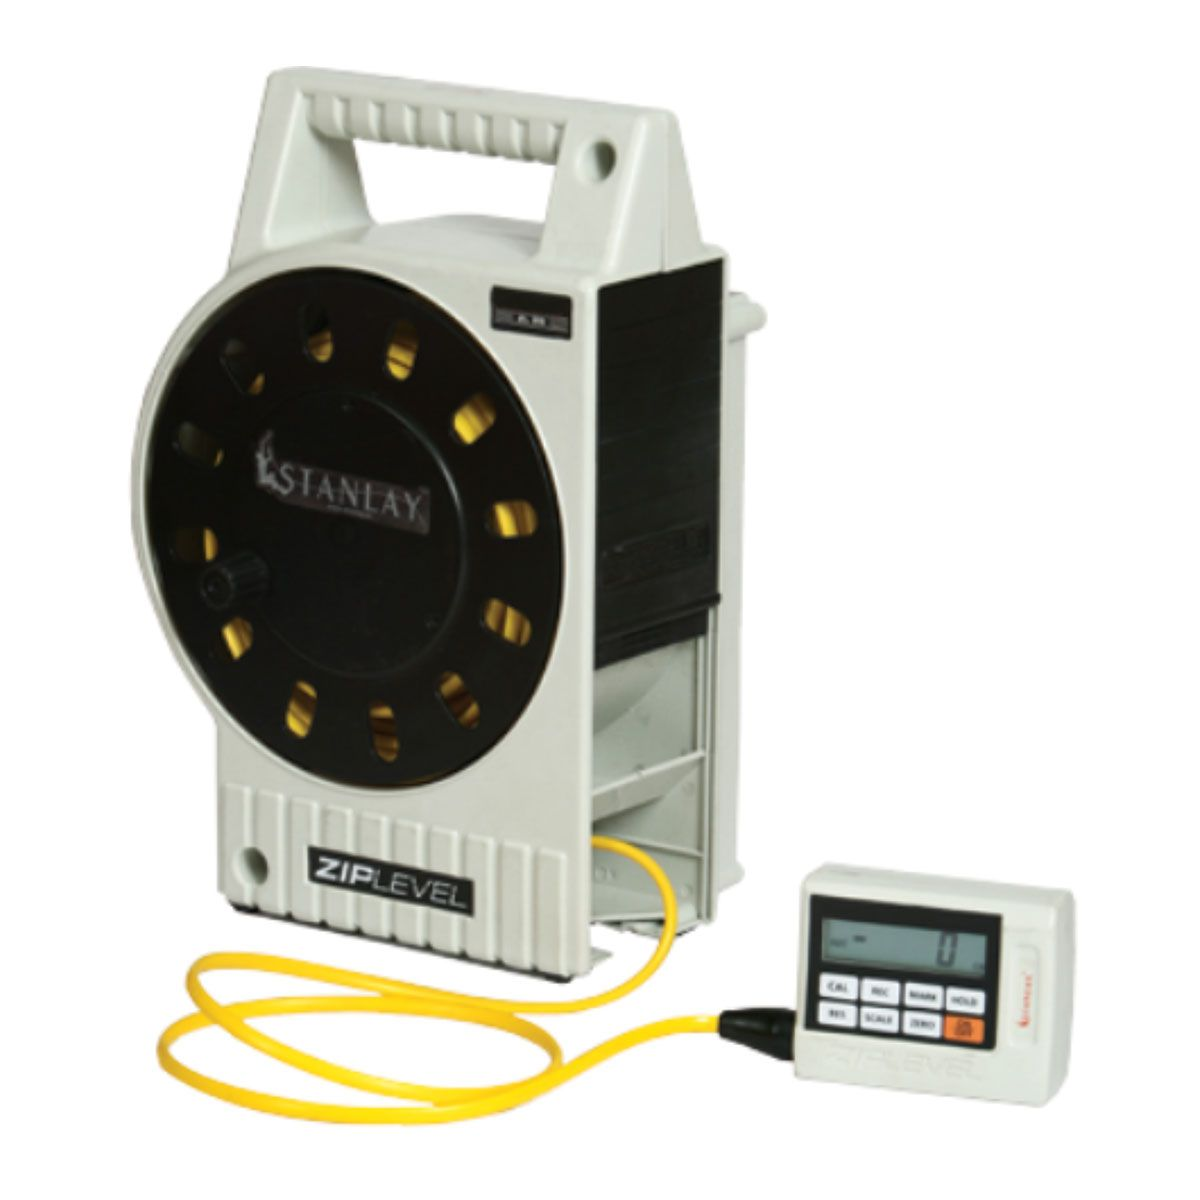 Altimeter Ziplevel Leveling Measurement Instrument